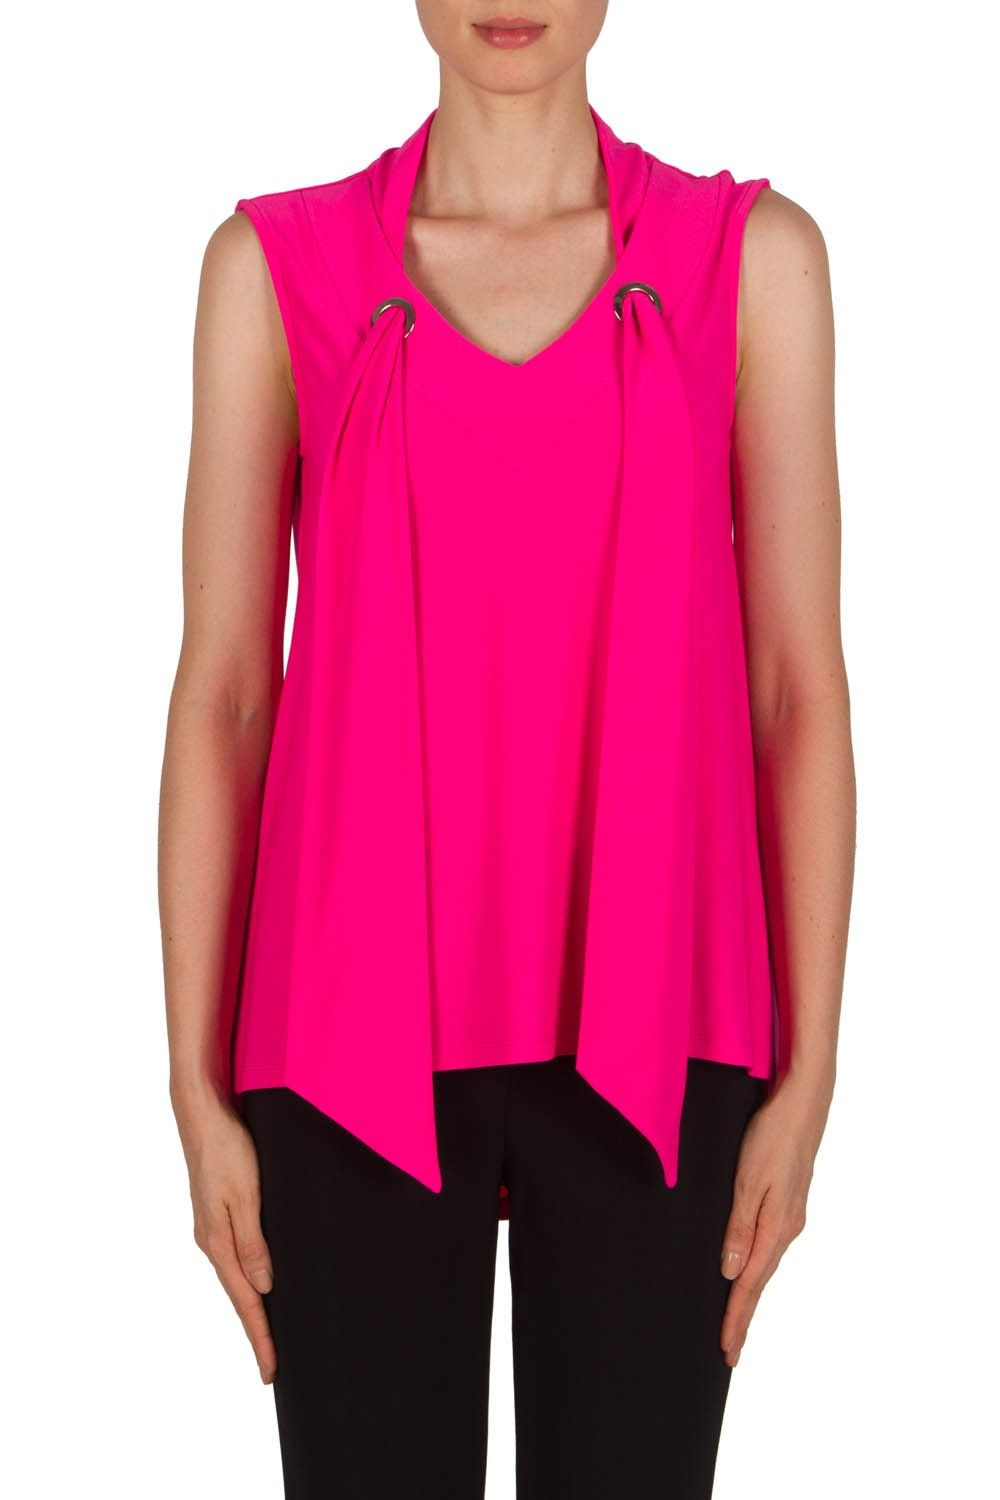 hight resolution of style number 181118 color neon pink material 96 polyester 4 spandex